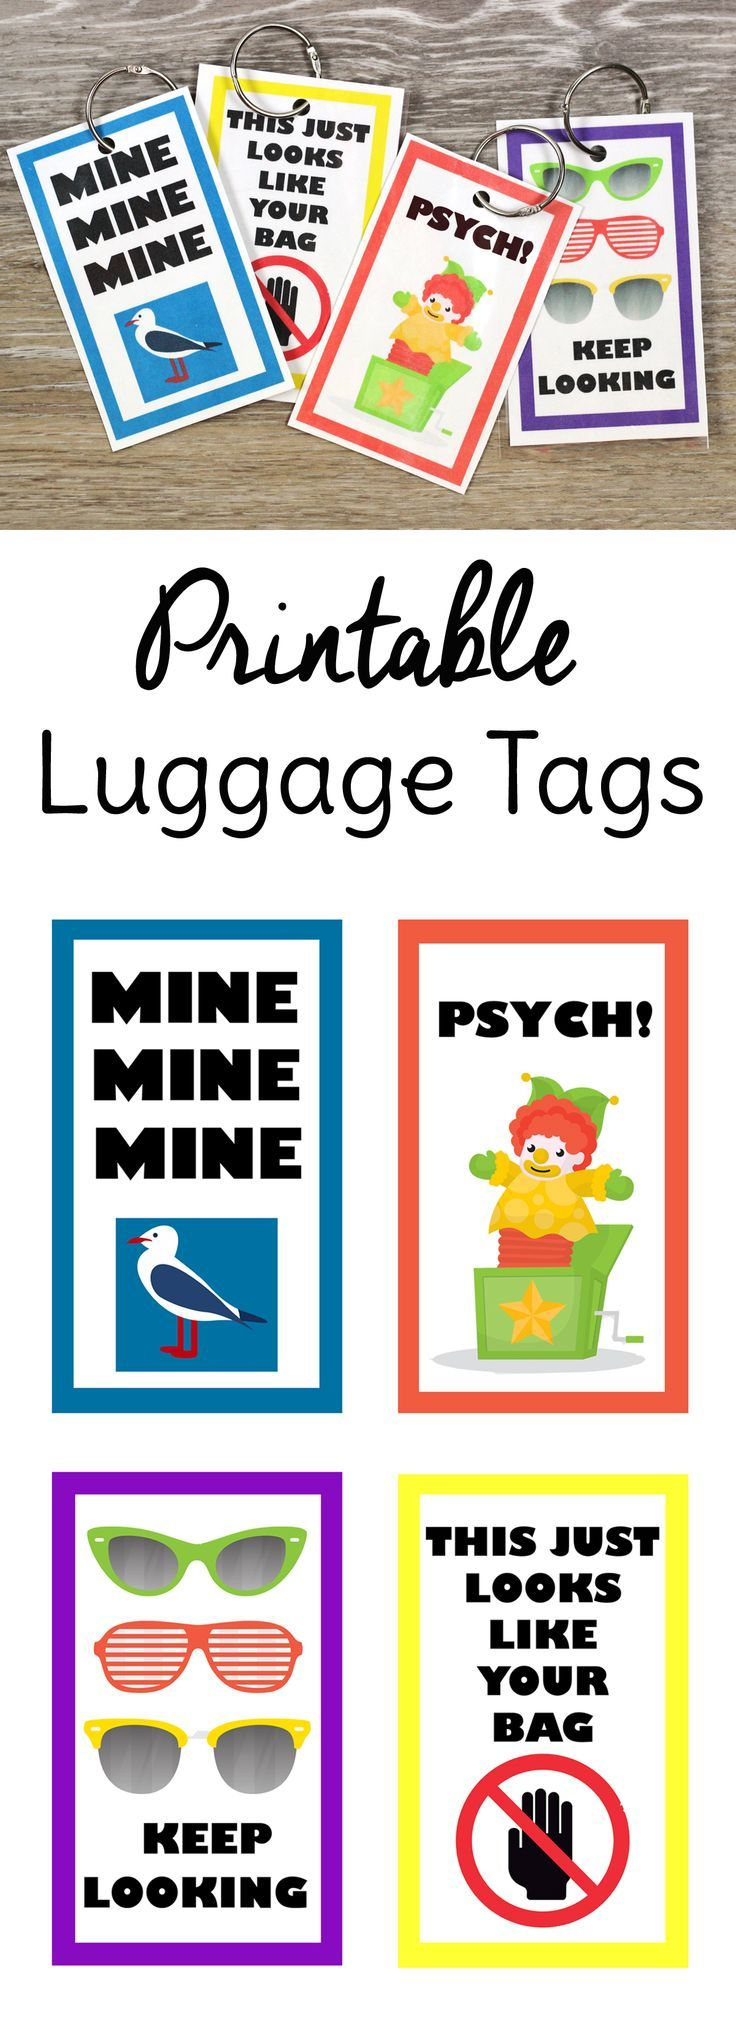 DIY a set of these funny free printable luggage tags for happy travels!